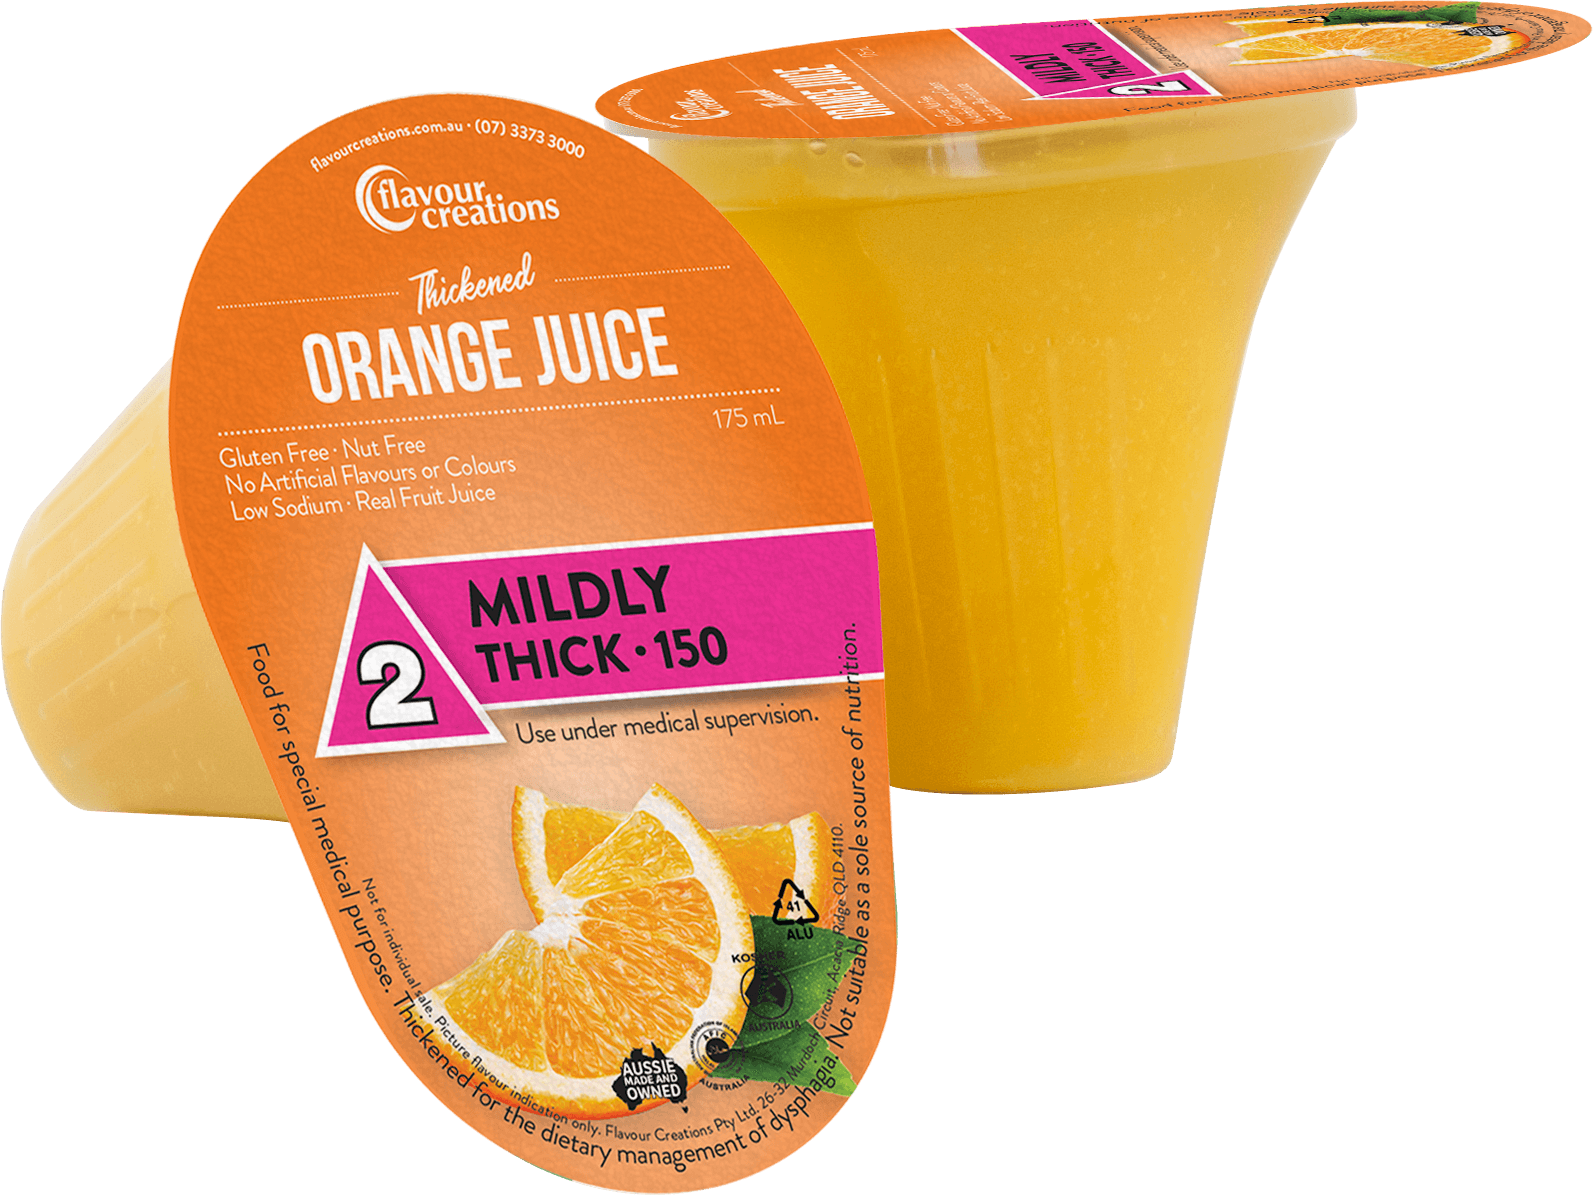 Flavour Creations Pre-Thickened Orange Juice Mildly Thick